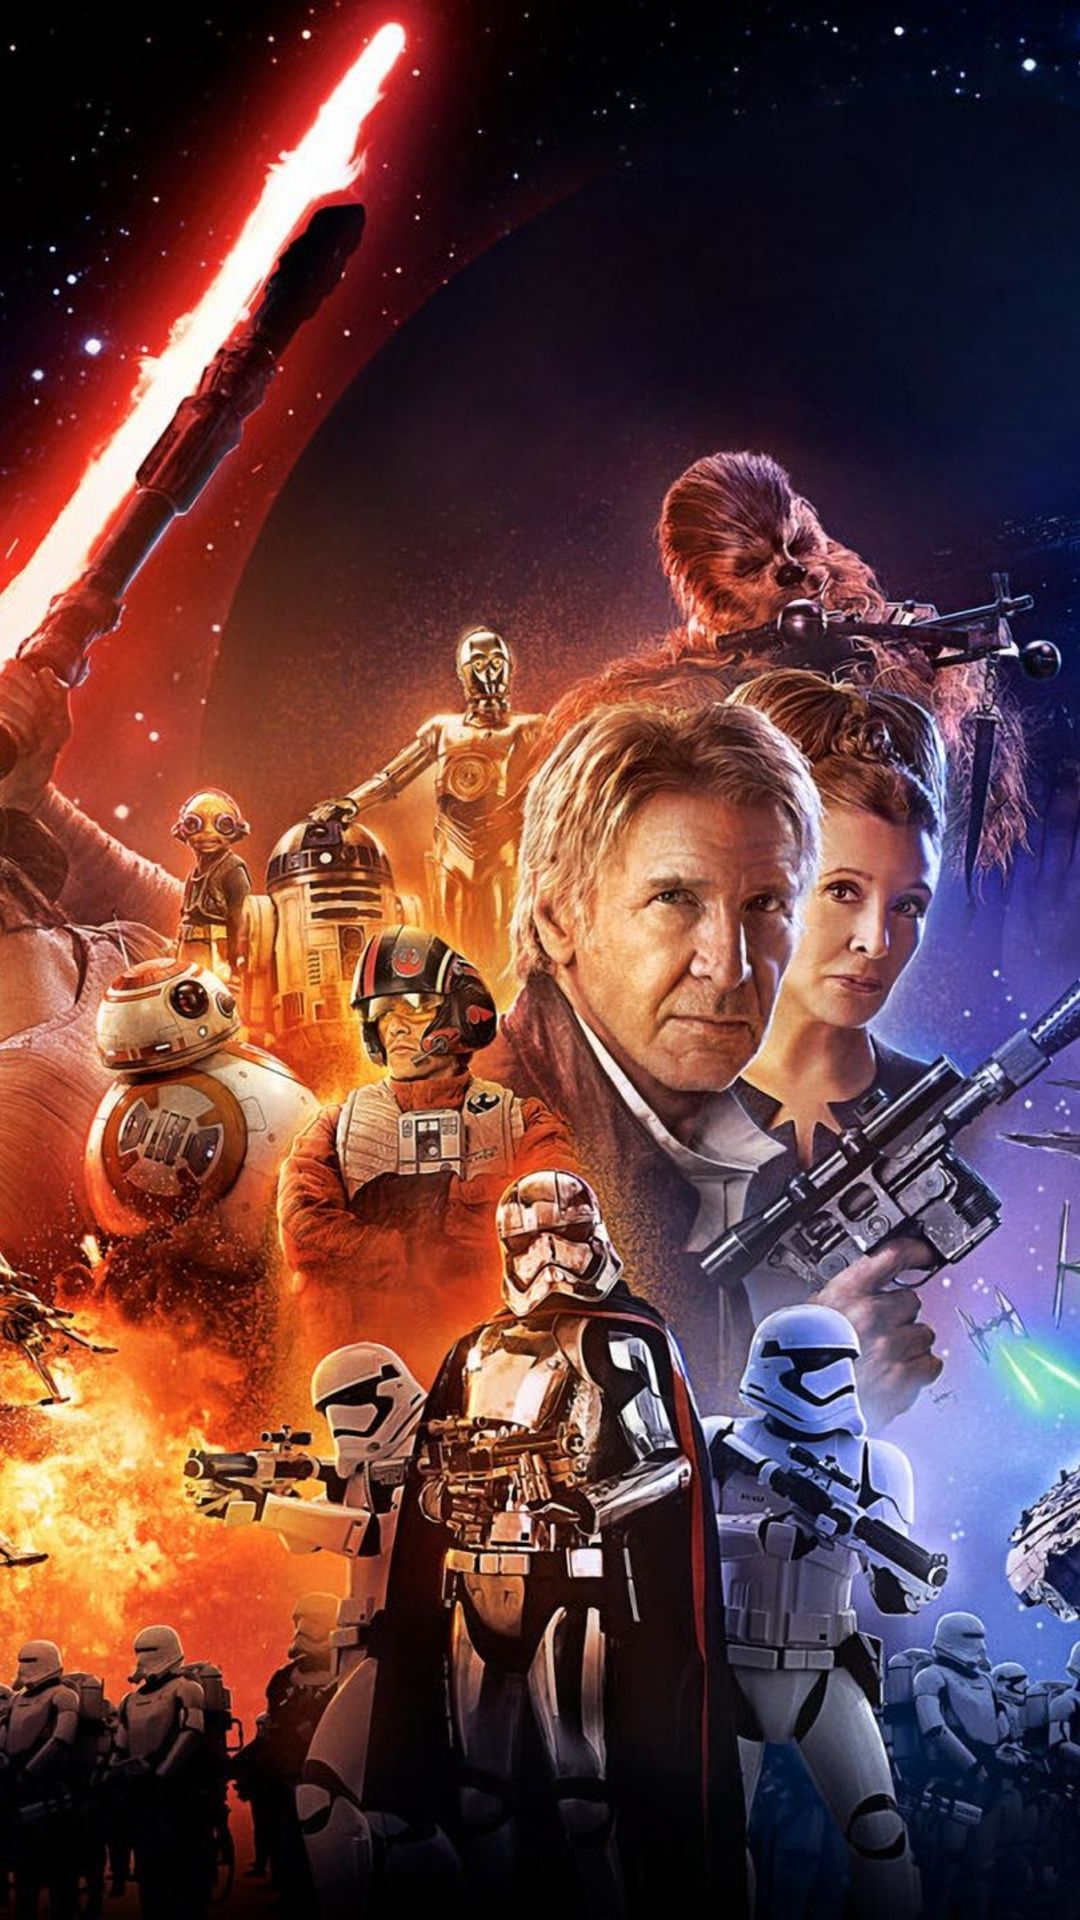 star wars: the force awakens iphone wallpapers | best games